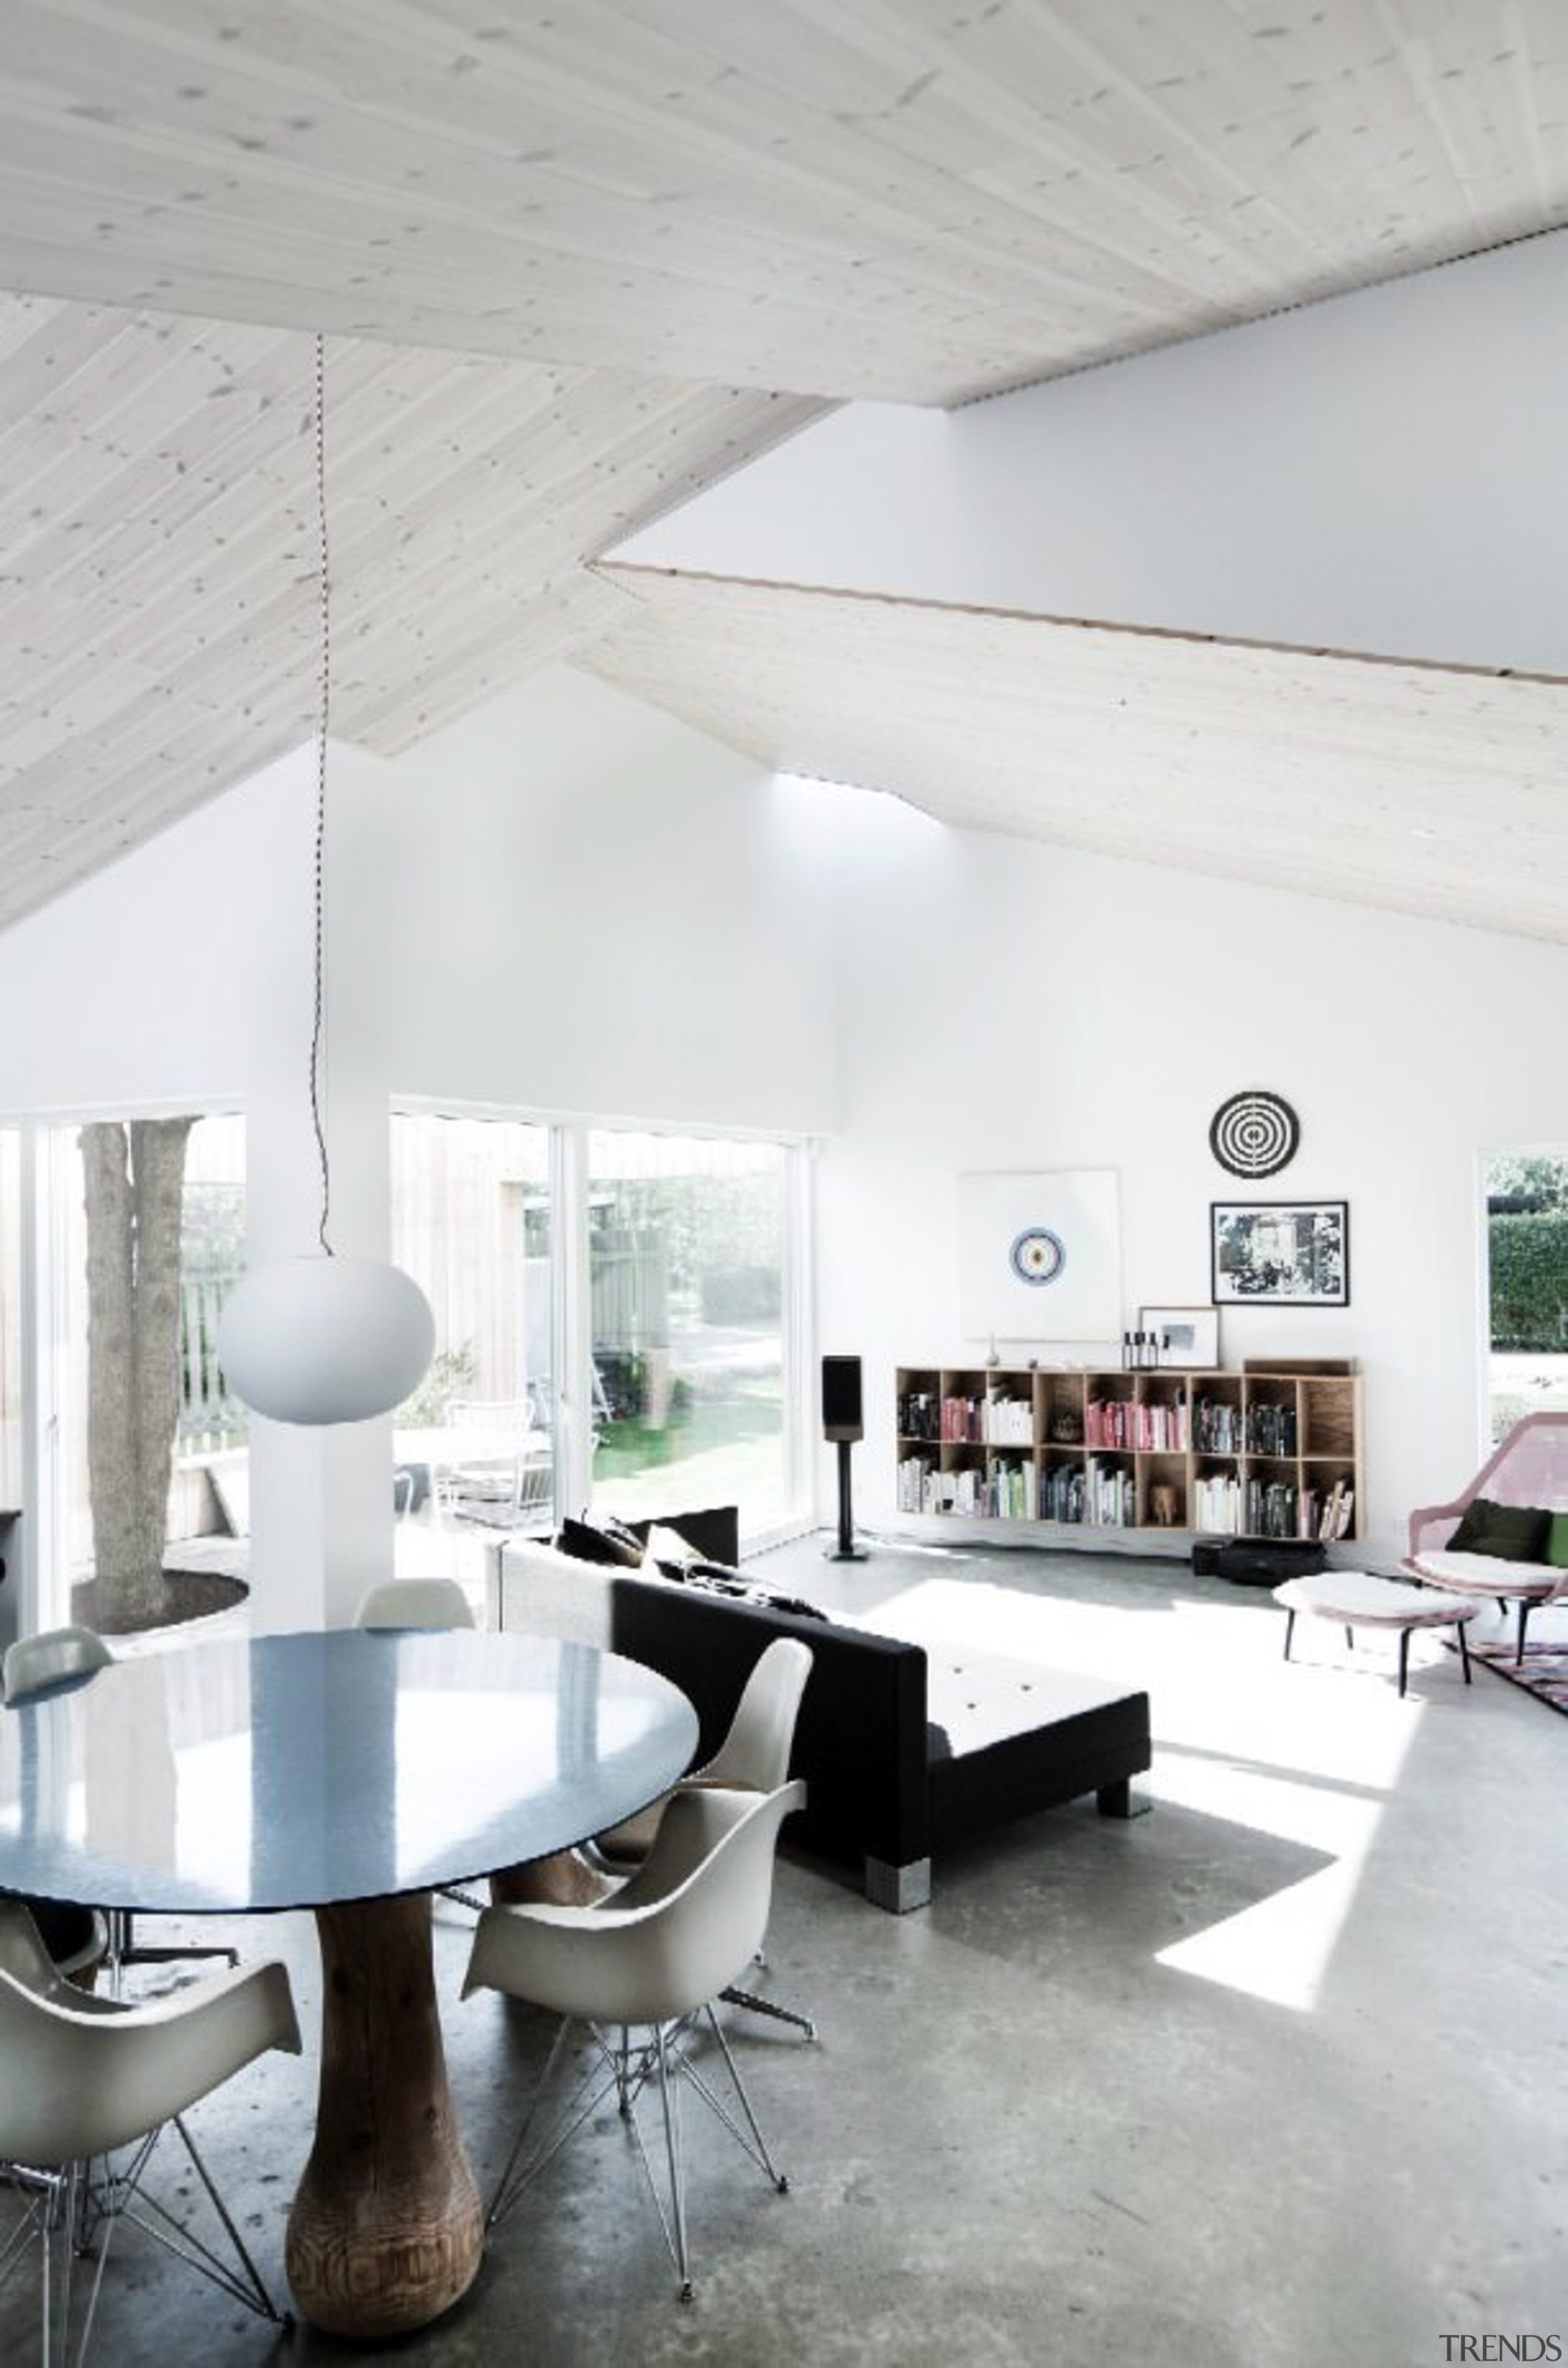 Architect: Sigured LarsenPhotography by Tia Borgsmidt architecture, ceiling, chair, daylighting, floor, furniture, house, interior design, living room, loft, product design, table, white, gray